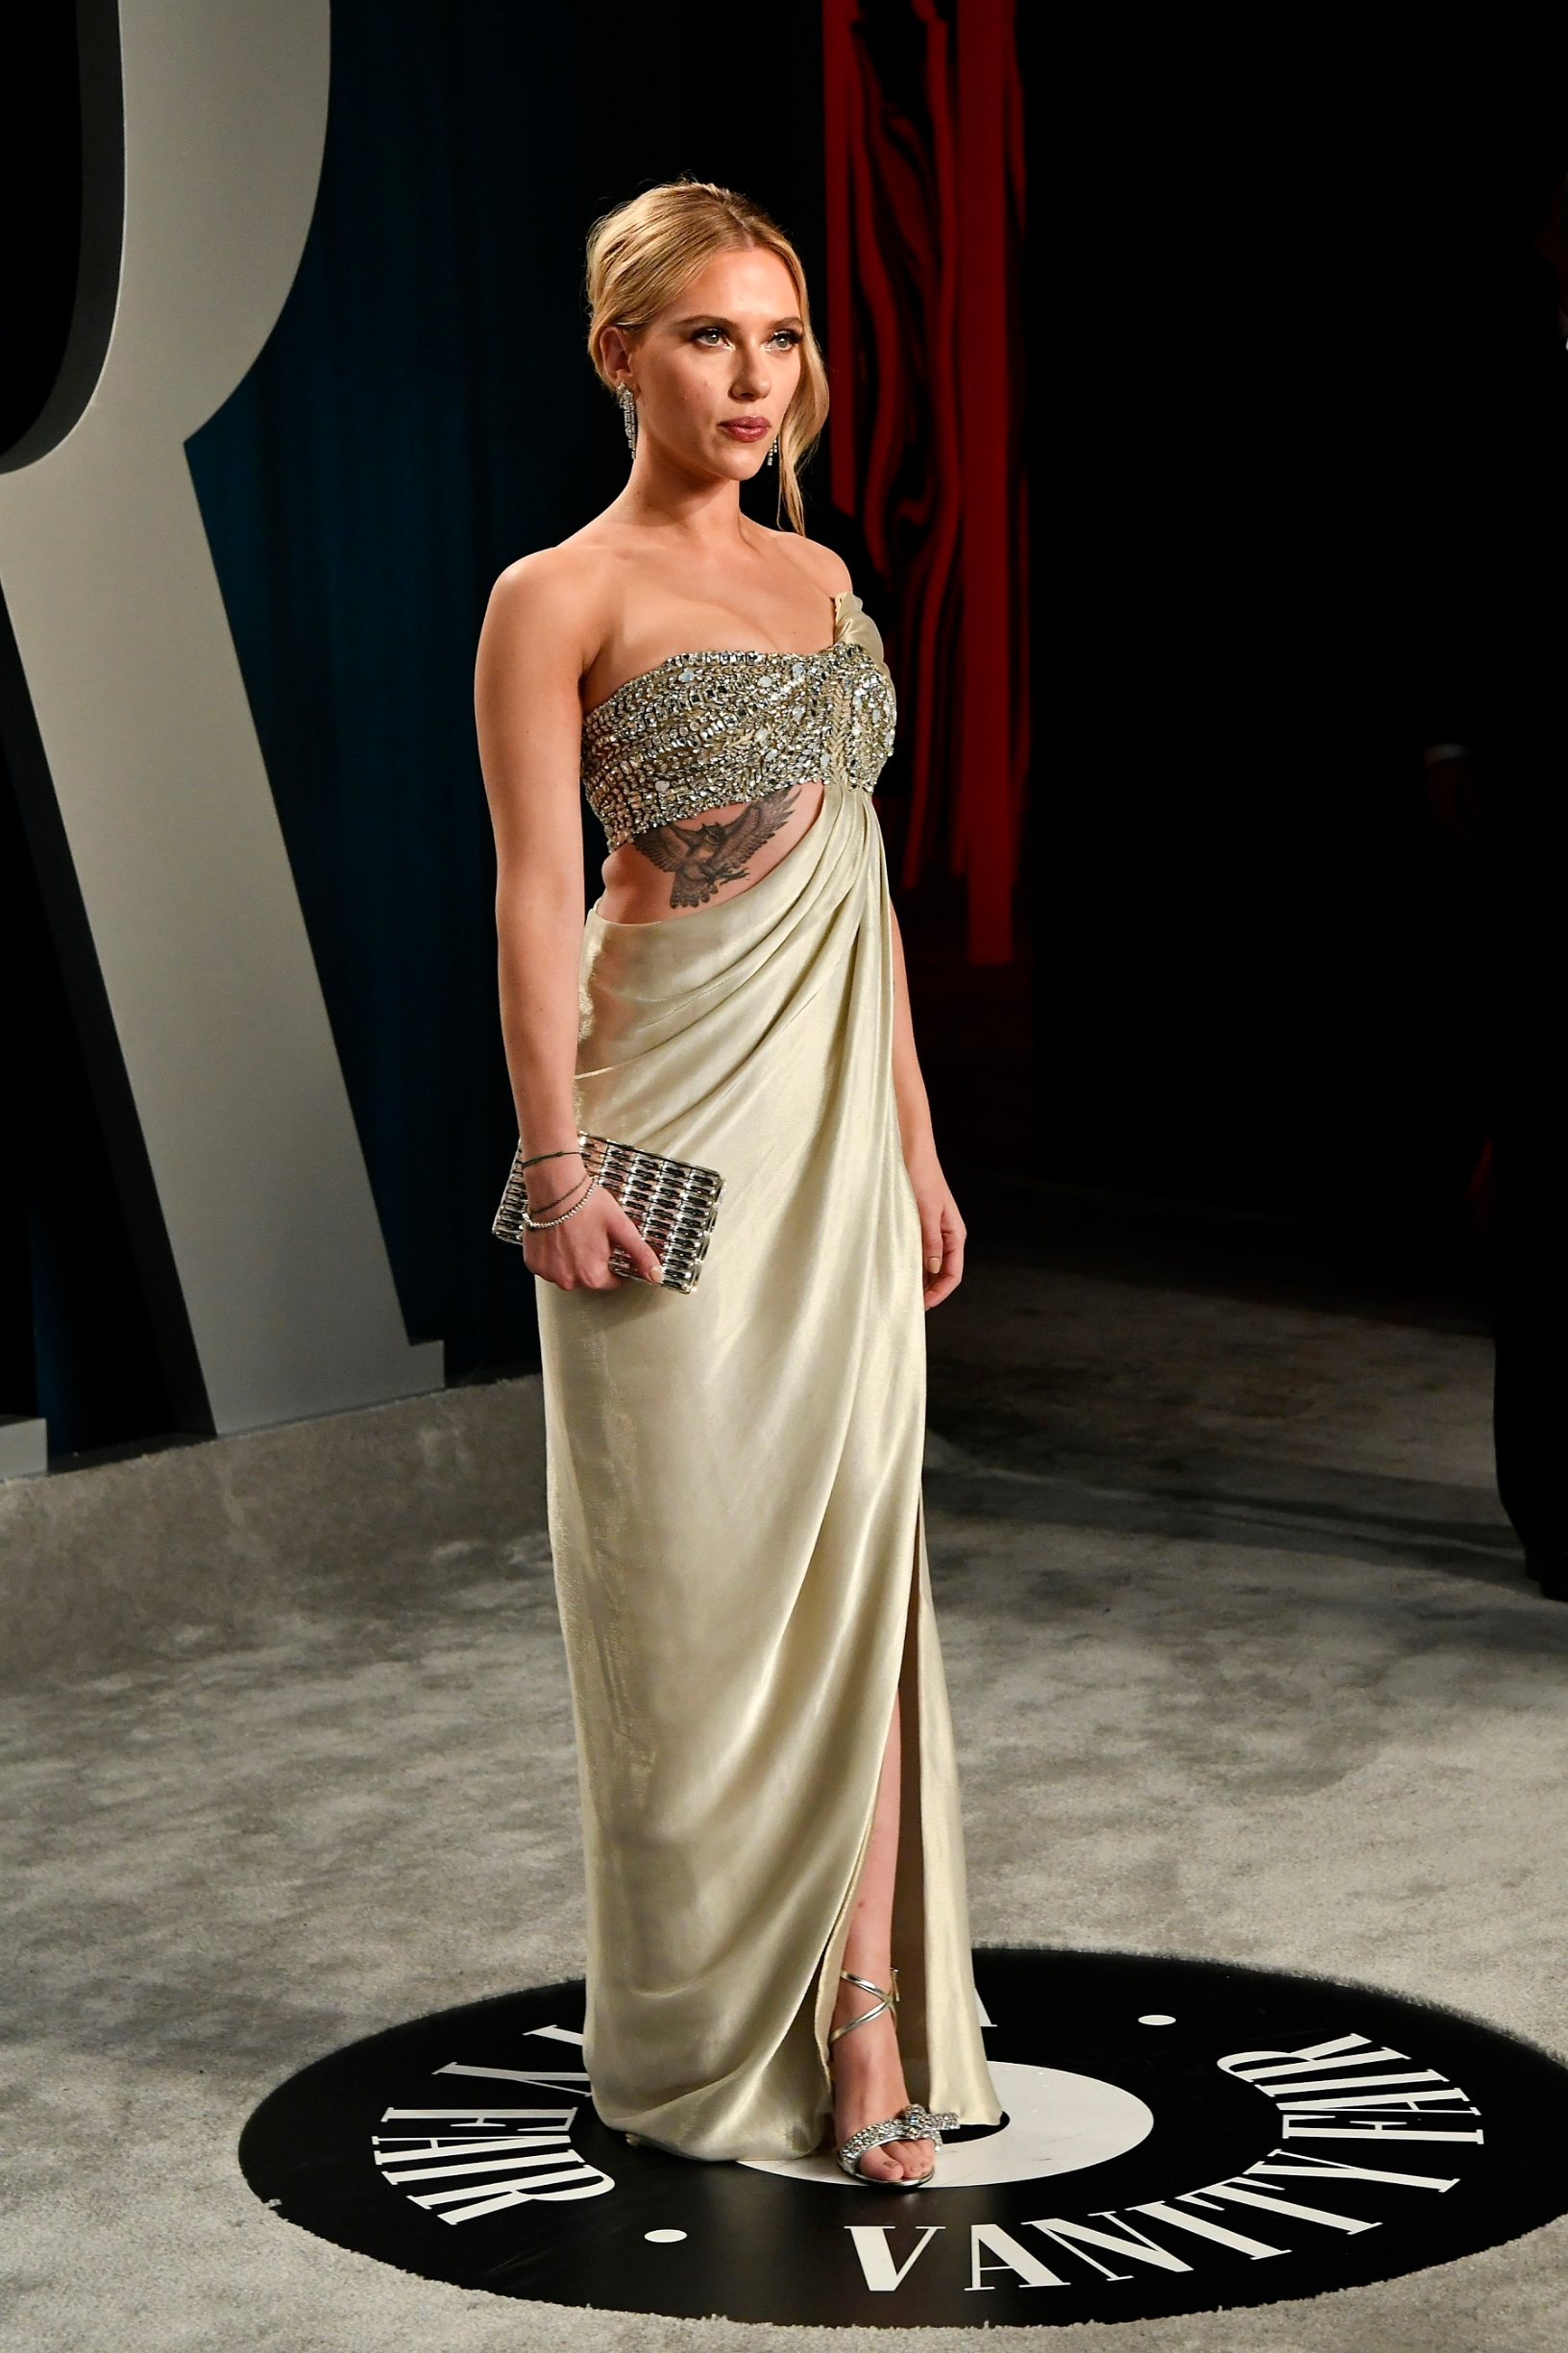 BEVERLY HILLS, CALIFORNIA - FEBRUARY 09: Scarlett Johansson attends the 2020 Vanity Fair Oscar Party hosted by Radhika Jones at Wallis Annenberg Center for the Performing Arts on February 09, 2020 in Beverly Hills, California. (Photo by Frazer Harrison/Getty Images)